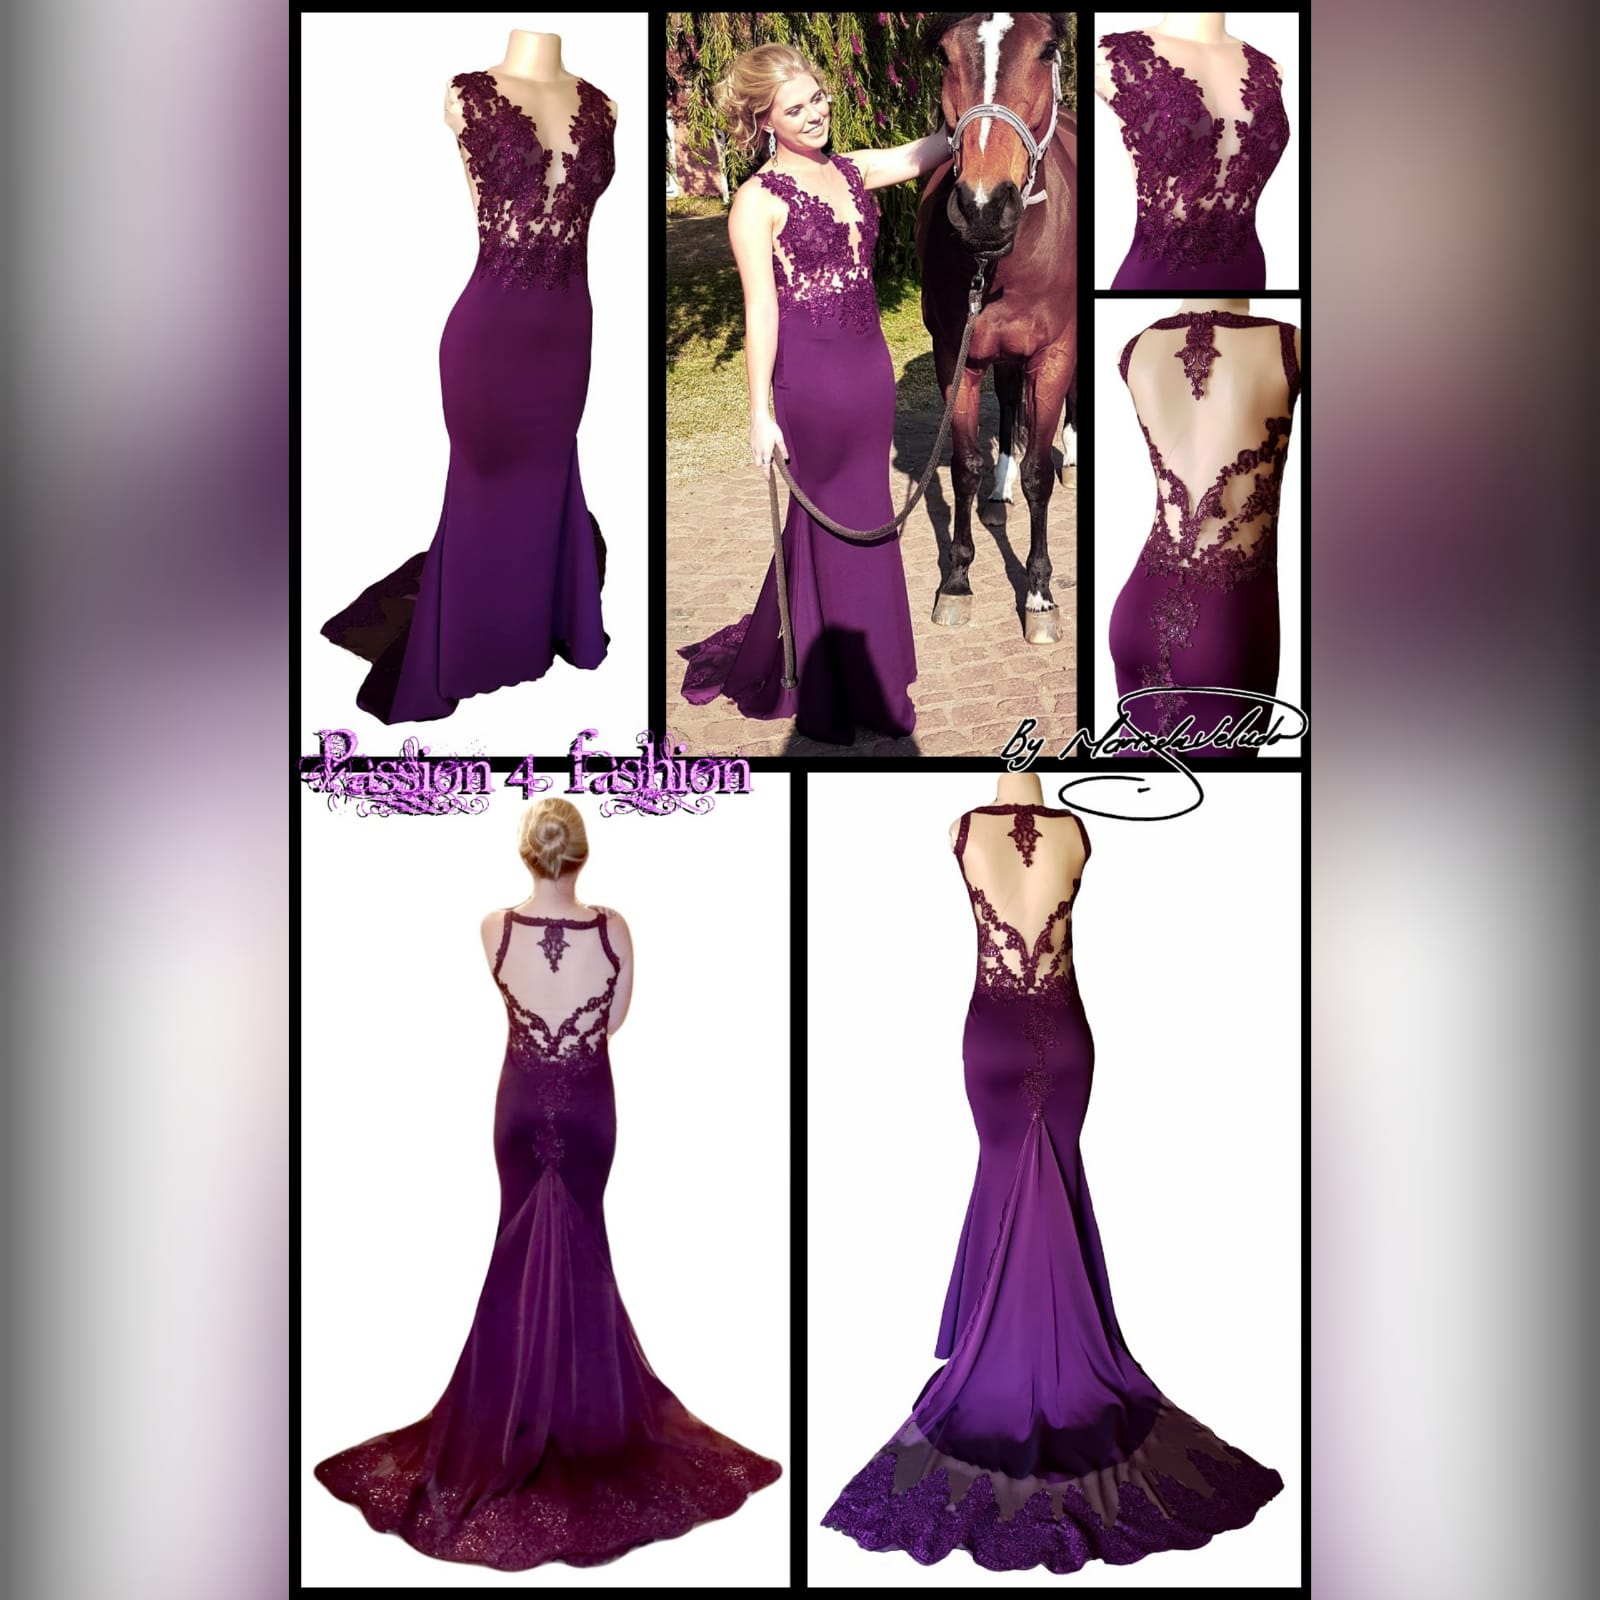 Plum soft mermaid gala dress illusion lace bodice 3 plum soft mermaid gala dress illusion lace bodice, open back detailed with lace. With a chiffon train with lace border.